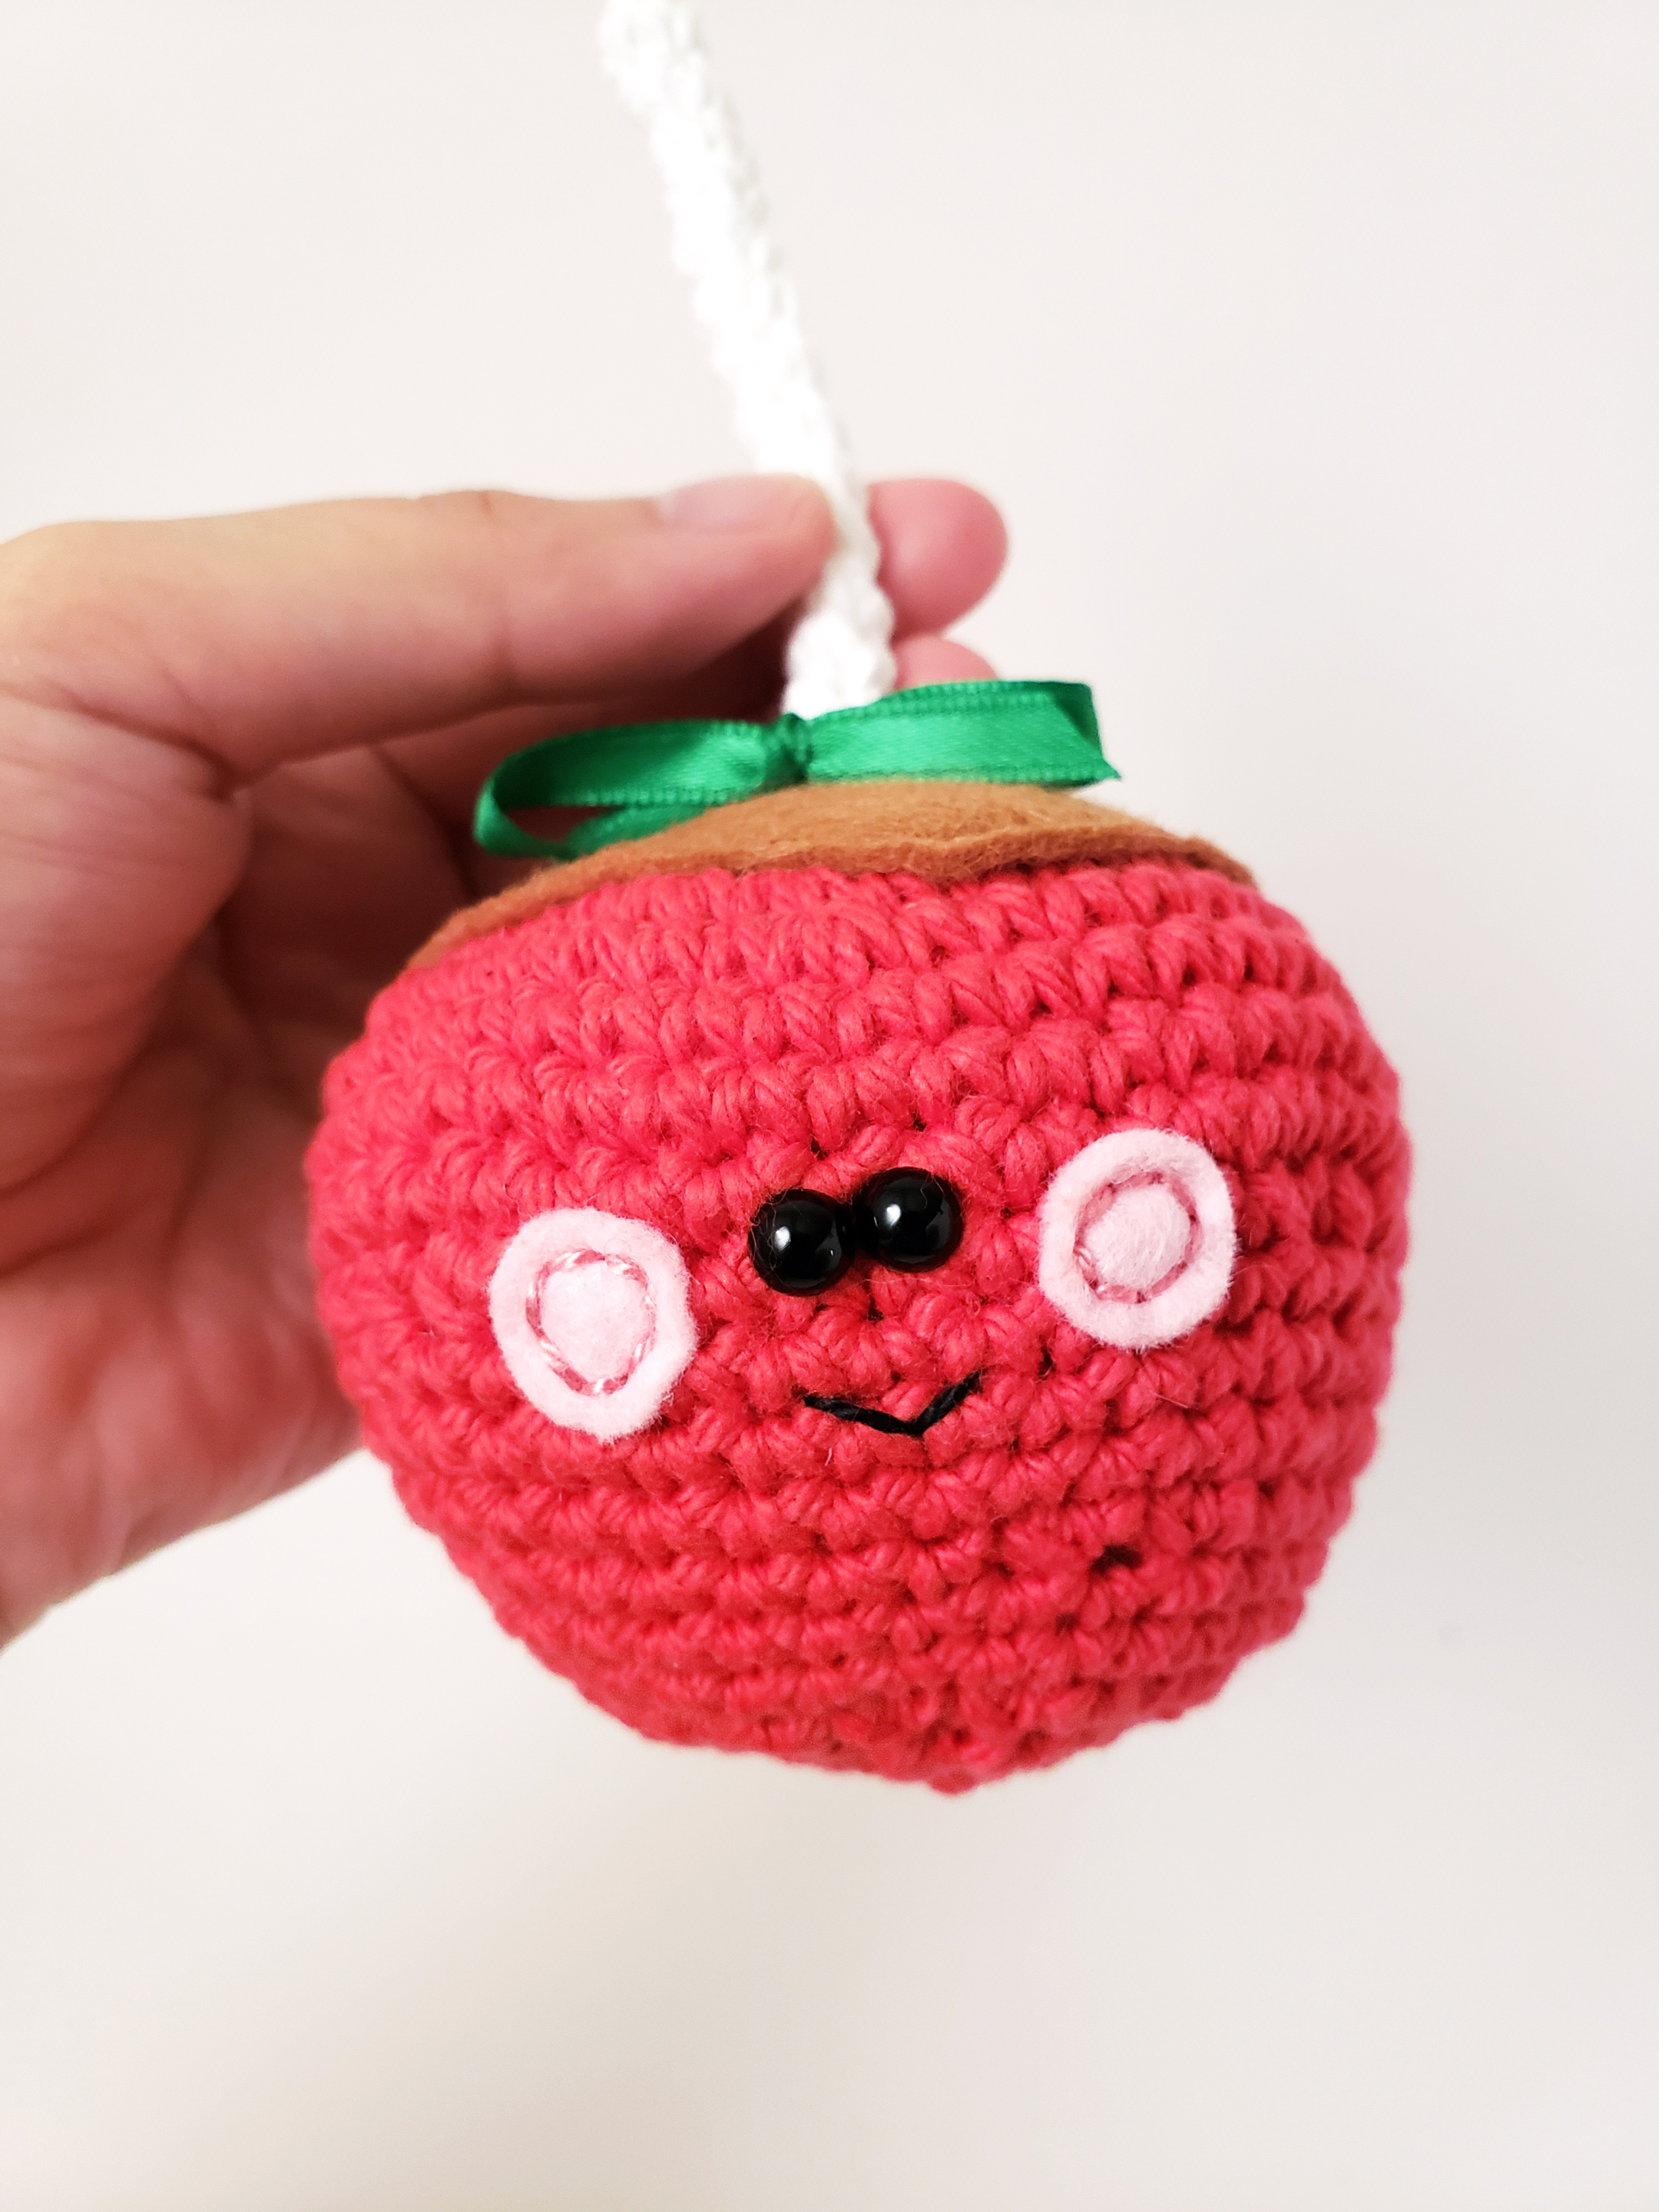 caramel apple crochet pattern